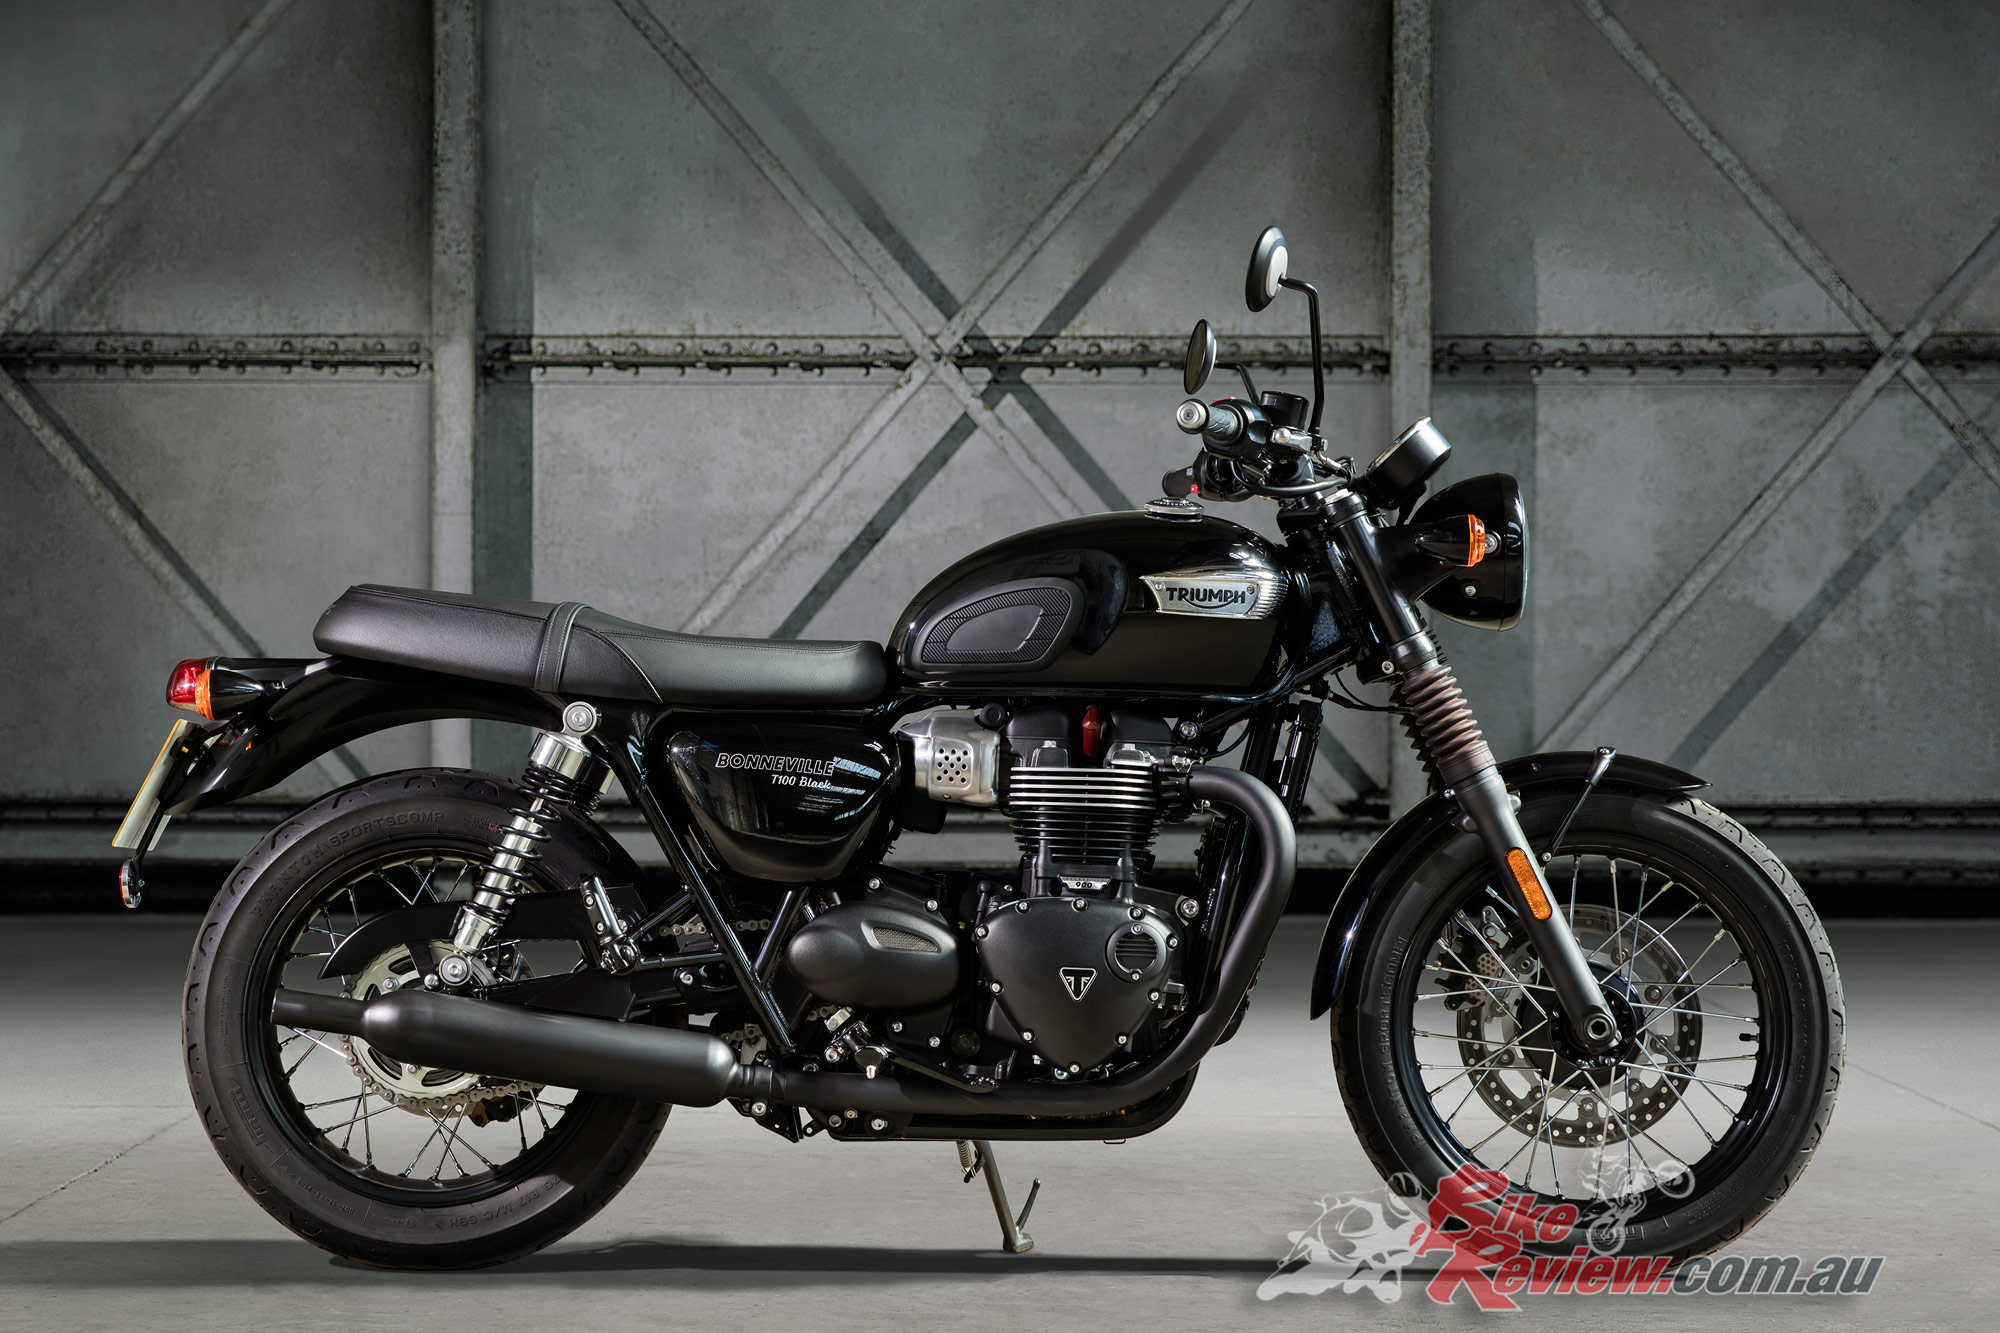 All-New Triumph Bonneville T100 & T100 Black - Bike Review